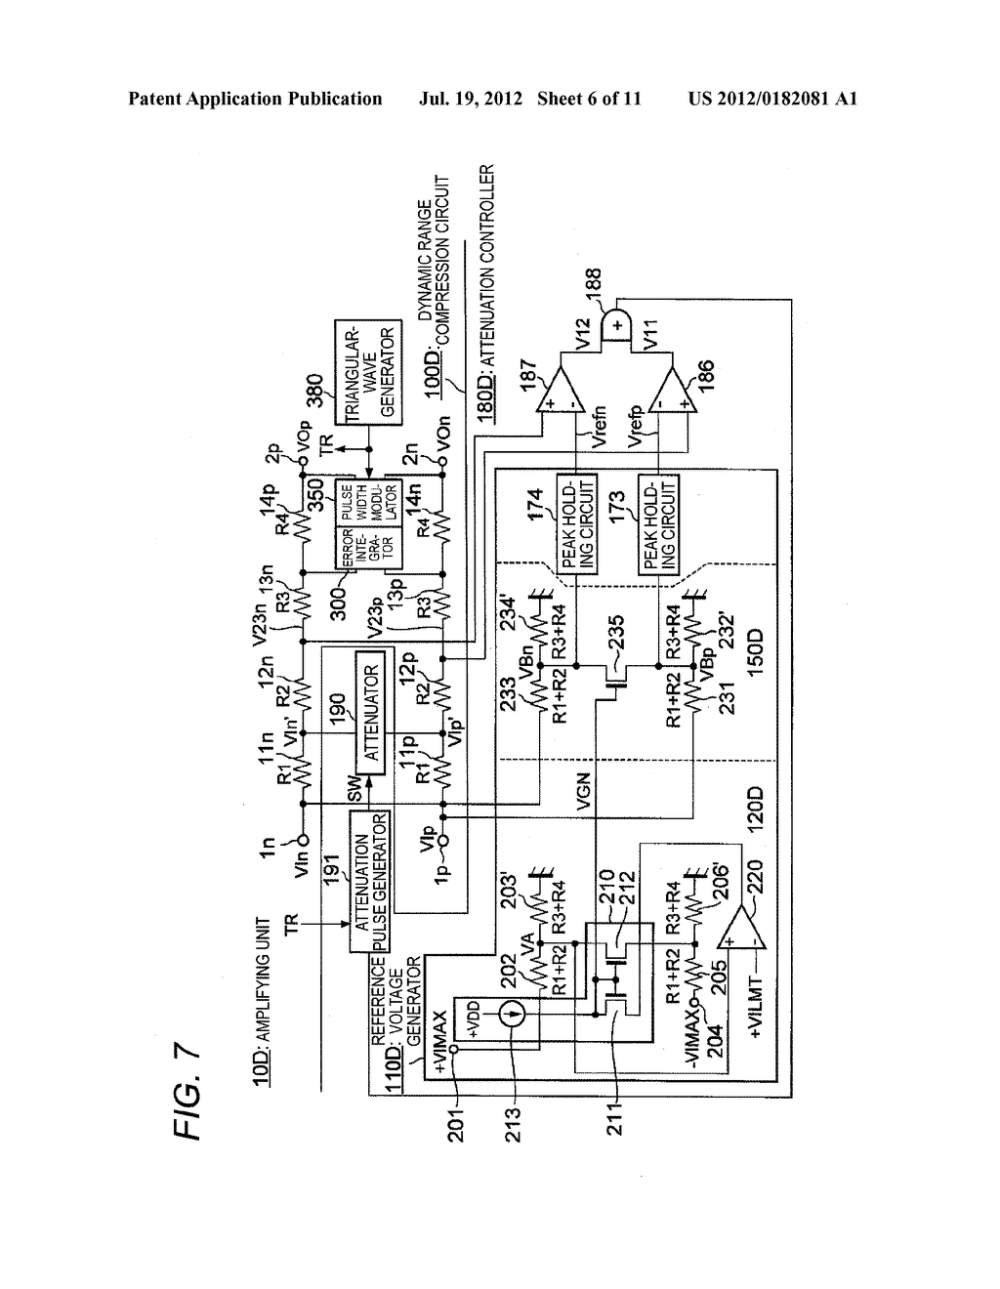 medium resolution of dynamic range compression circuit and class d amplifier diagram schematic and image 07